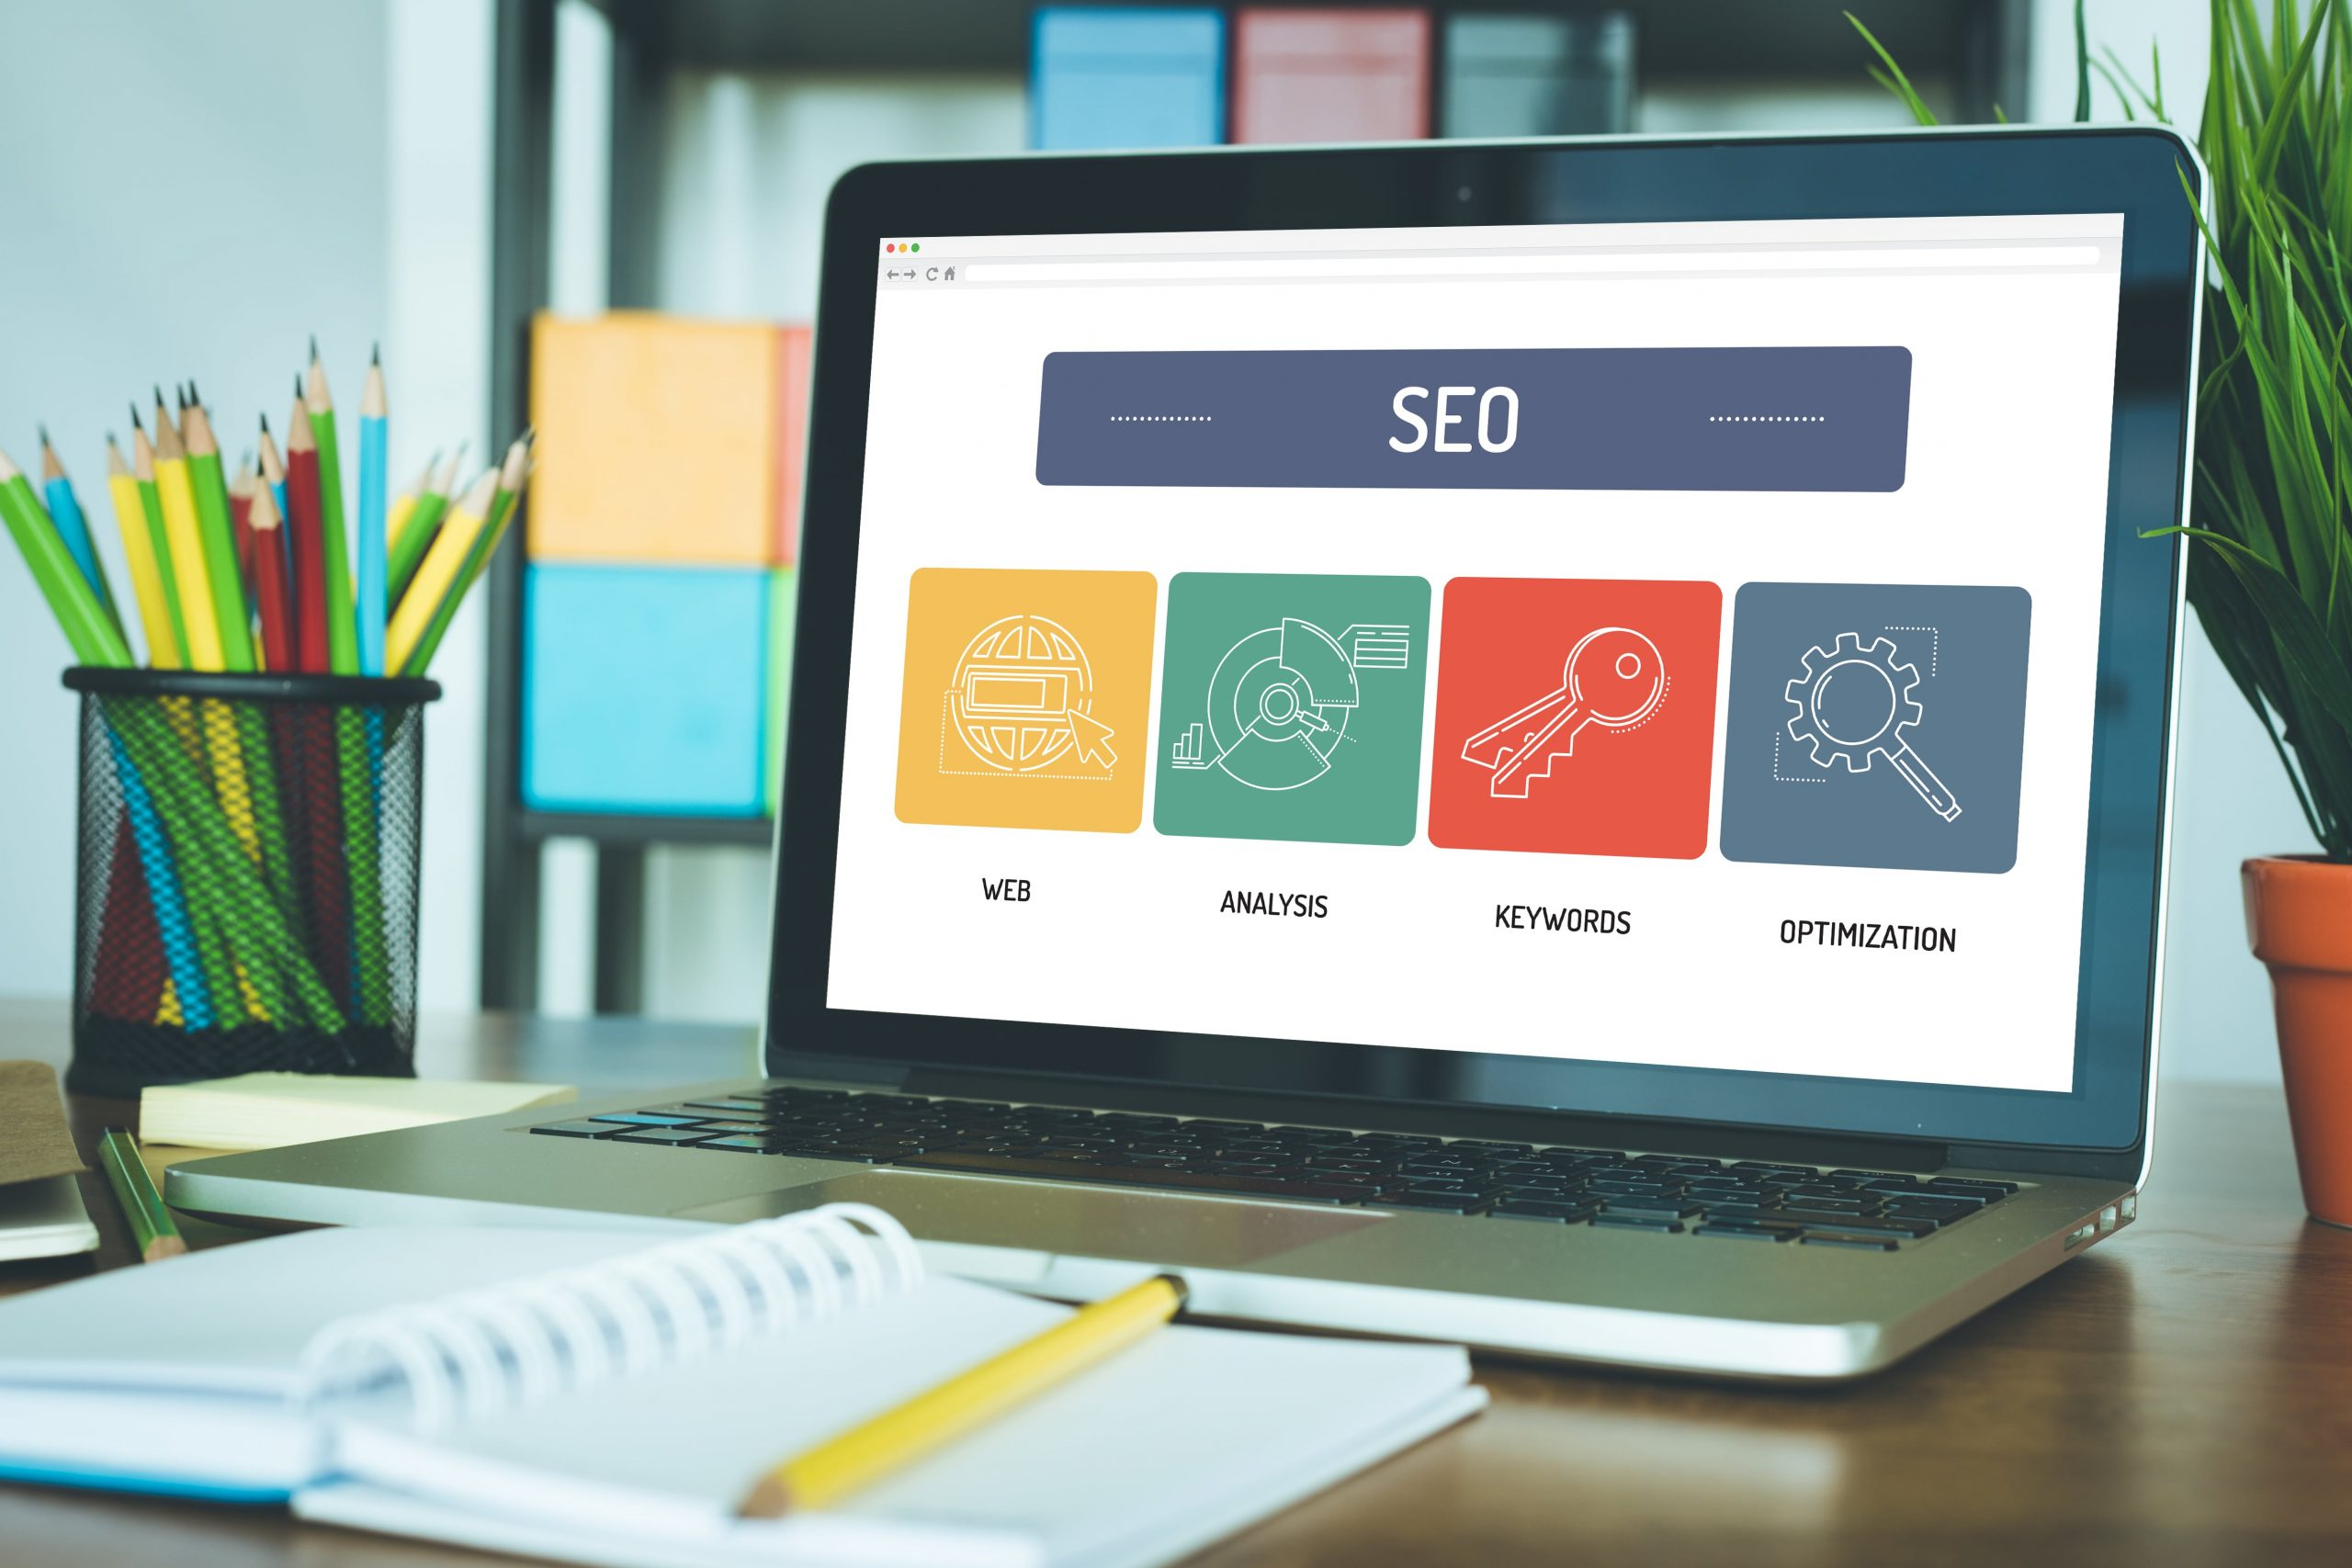 How Important is an SEO Friendly Website for Businesses?